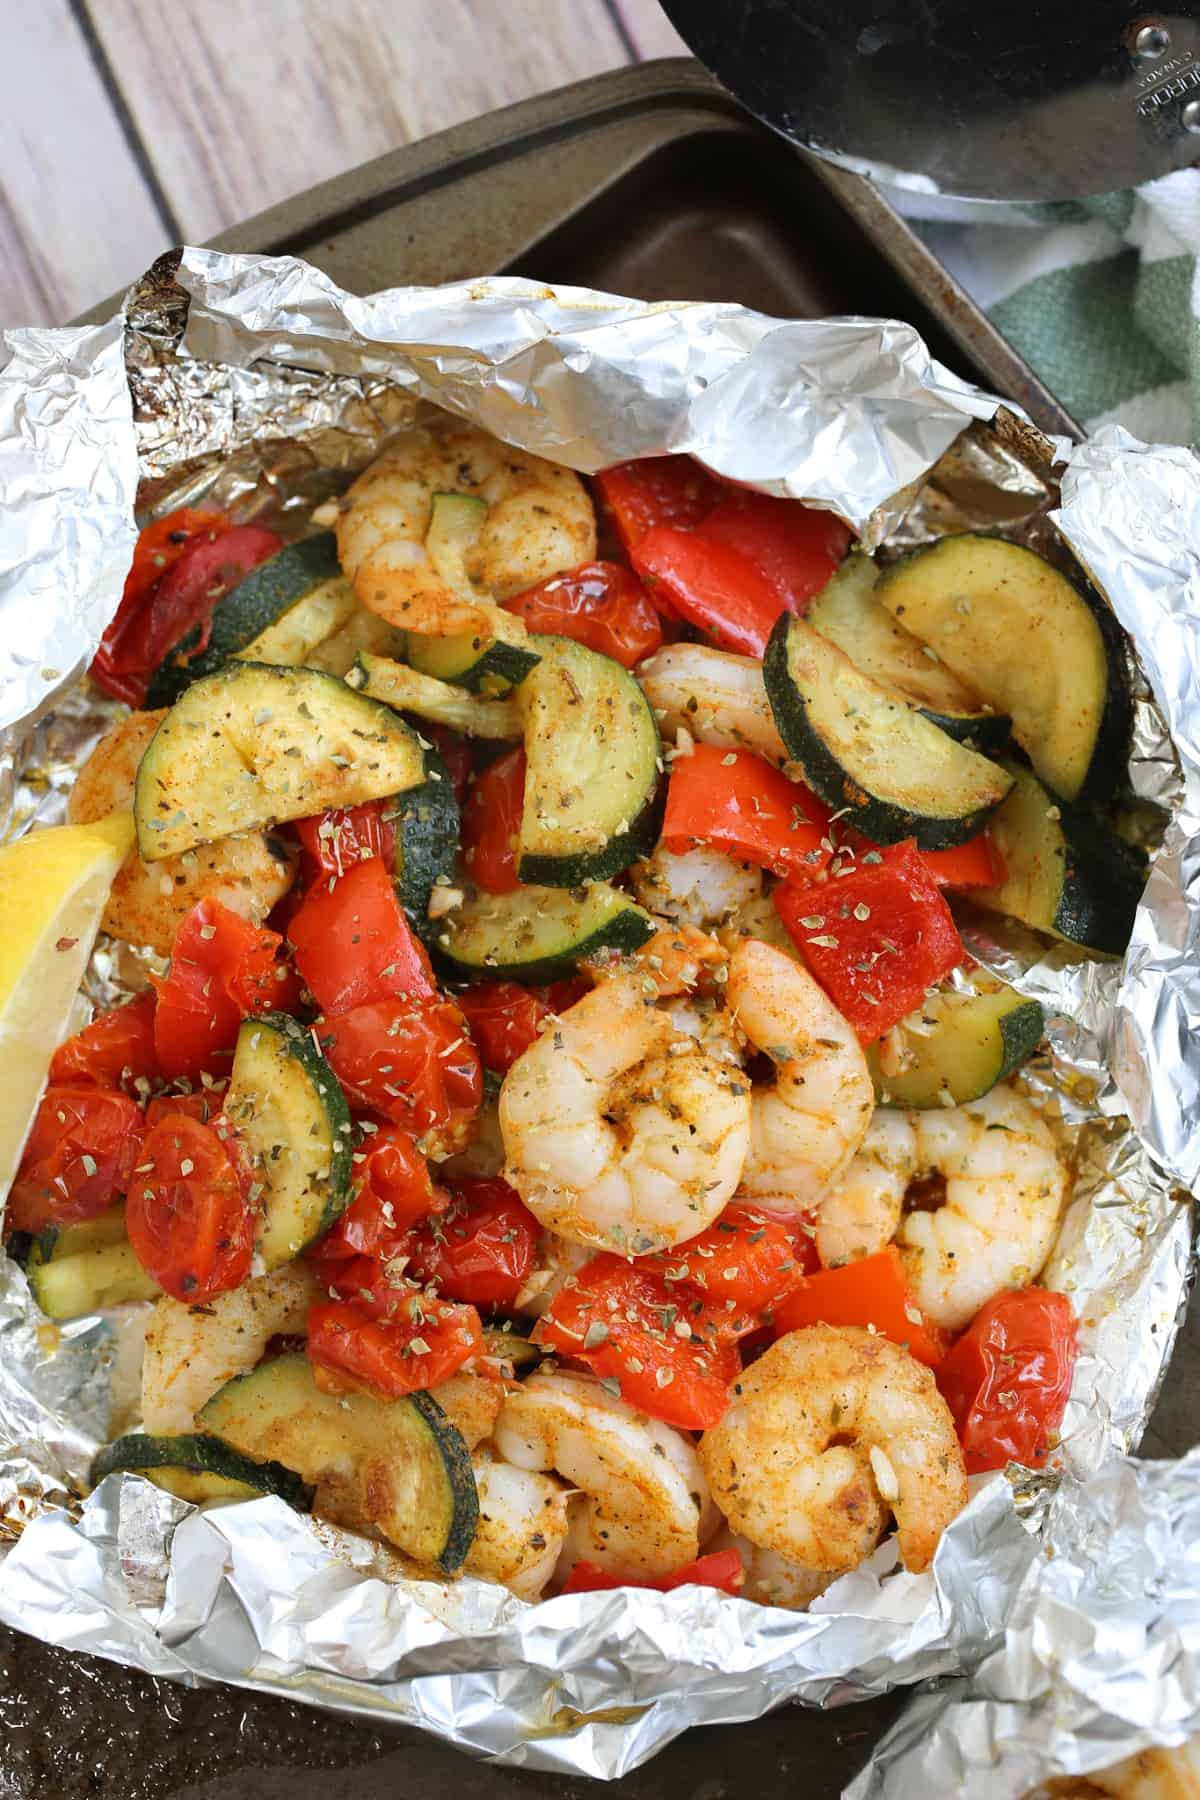 shrimp and summer vegetables in a foil package